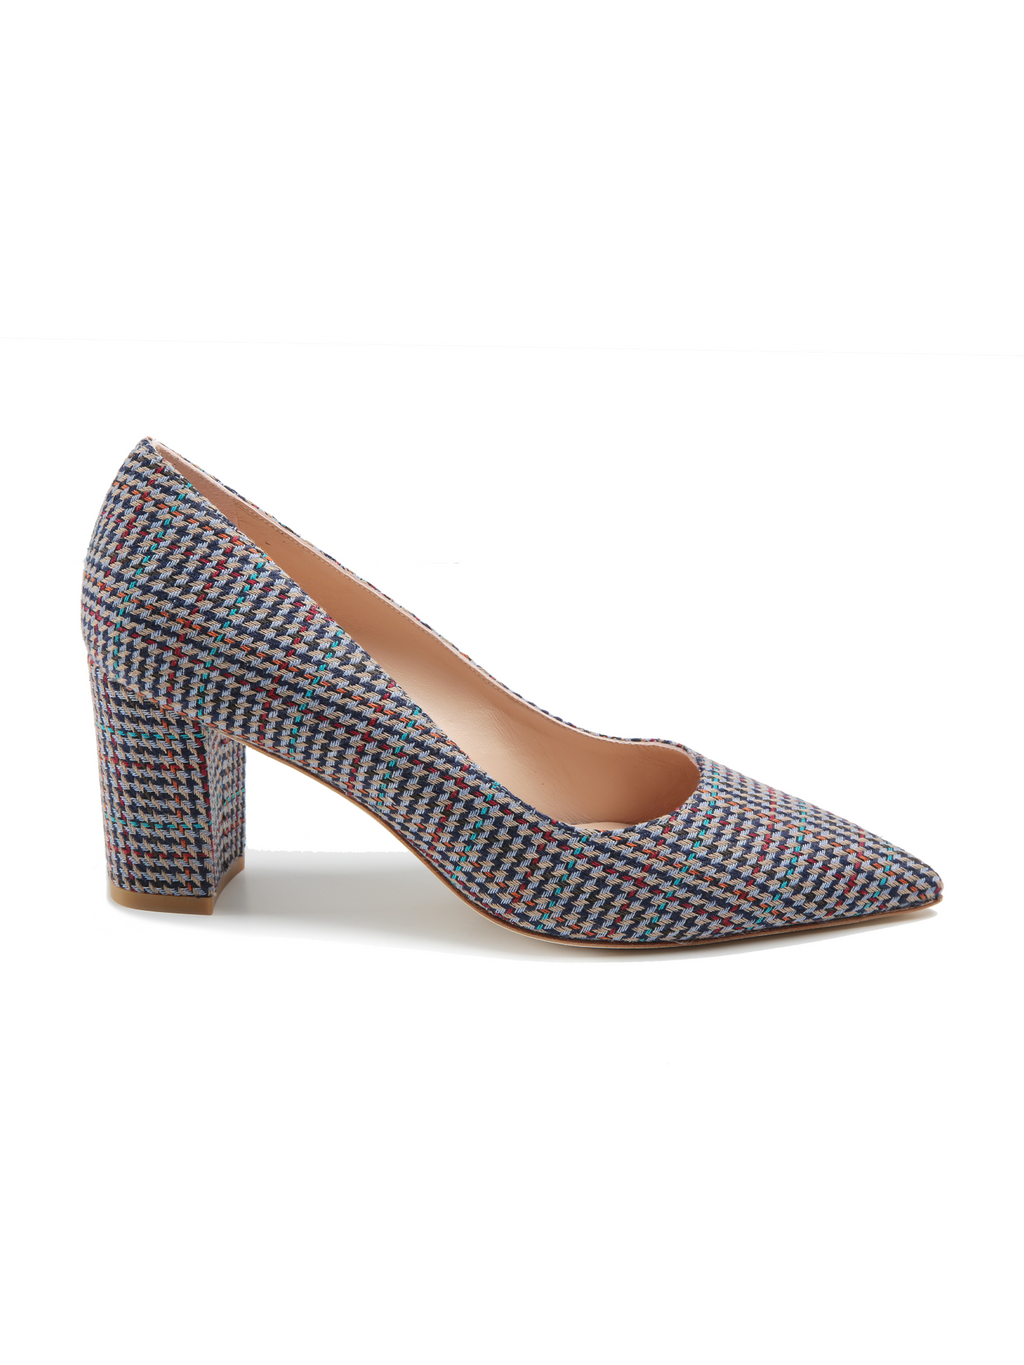 Stuart Weitzman Laney 75 Plaid Pump